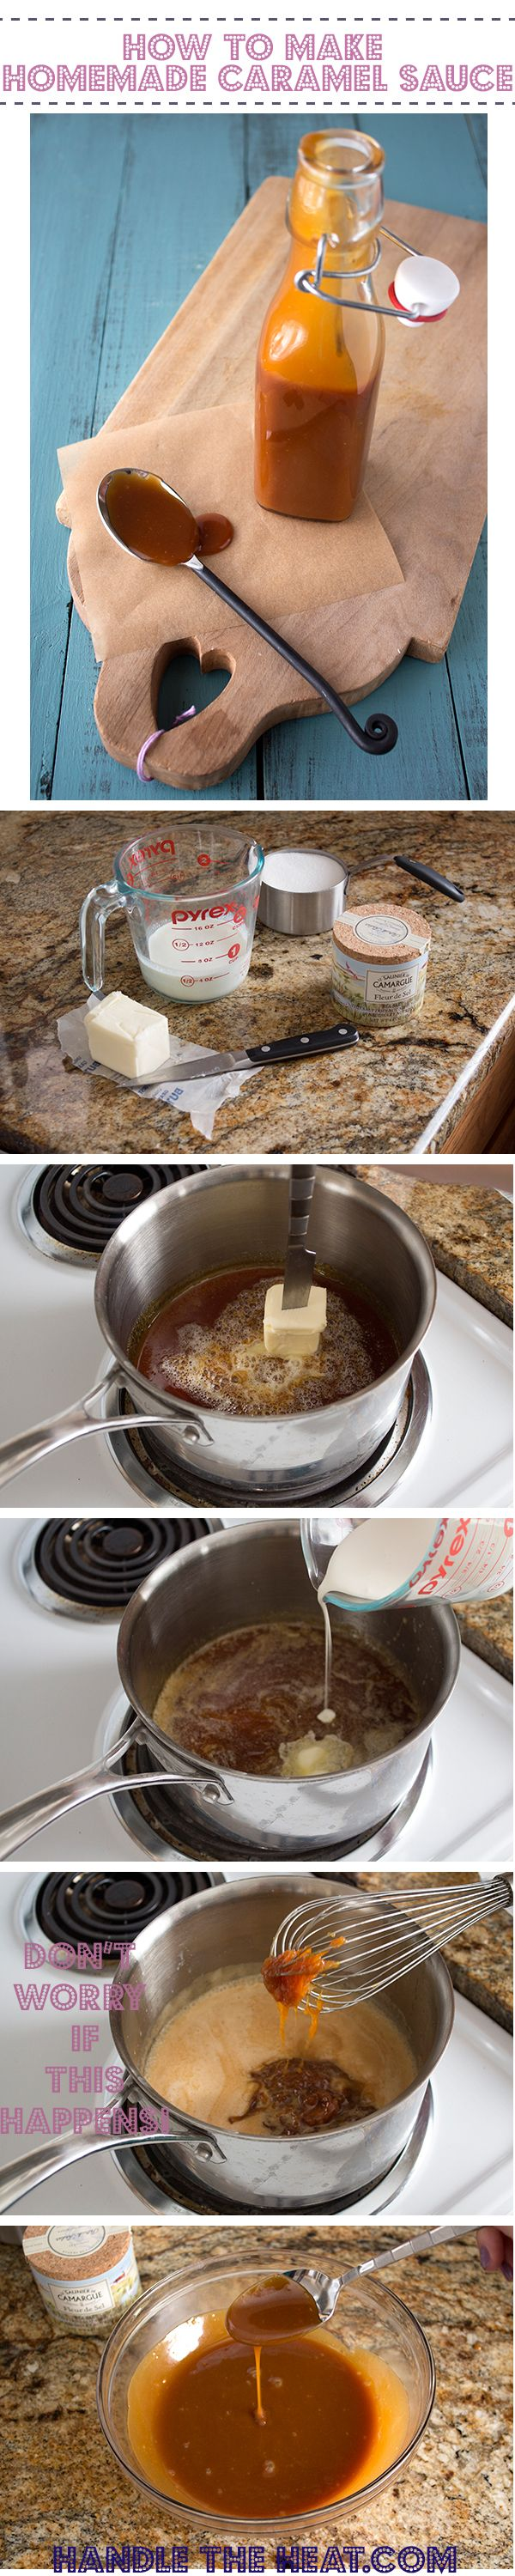 How to Make EASY Caramel Sauce with step-by-step photos AND a video! So much better than store-bought!